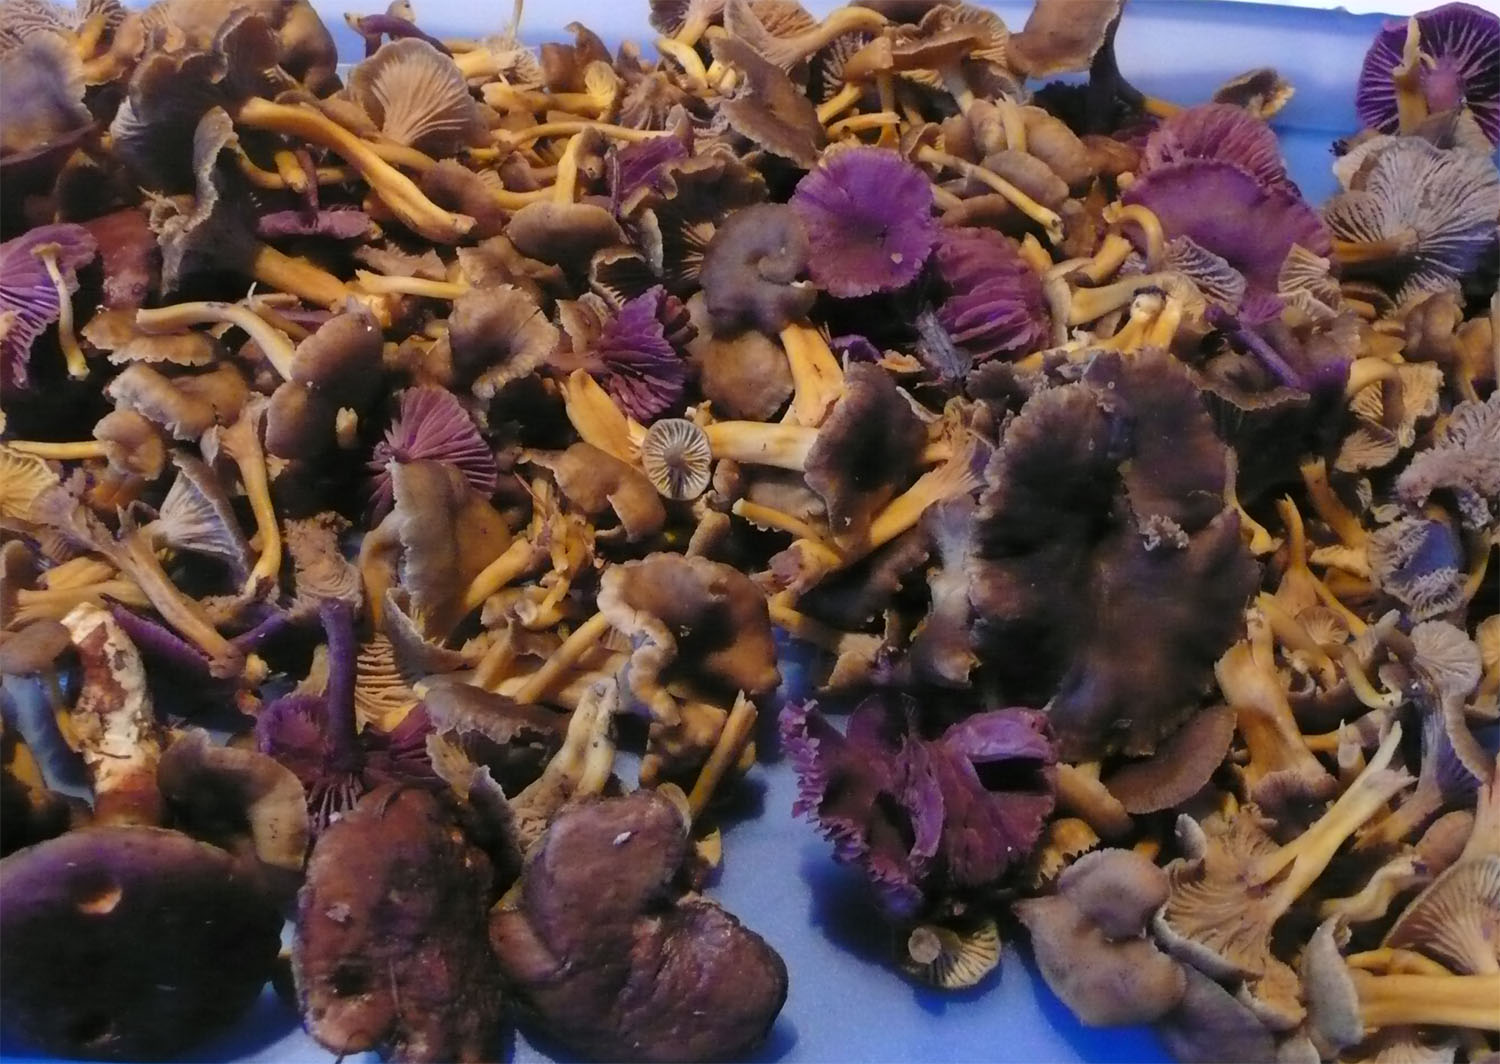 Chanterelles and amethysts found in the State forest